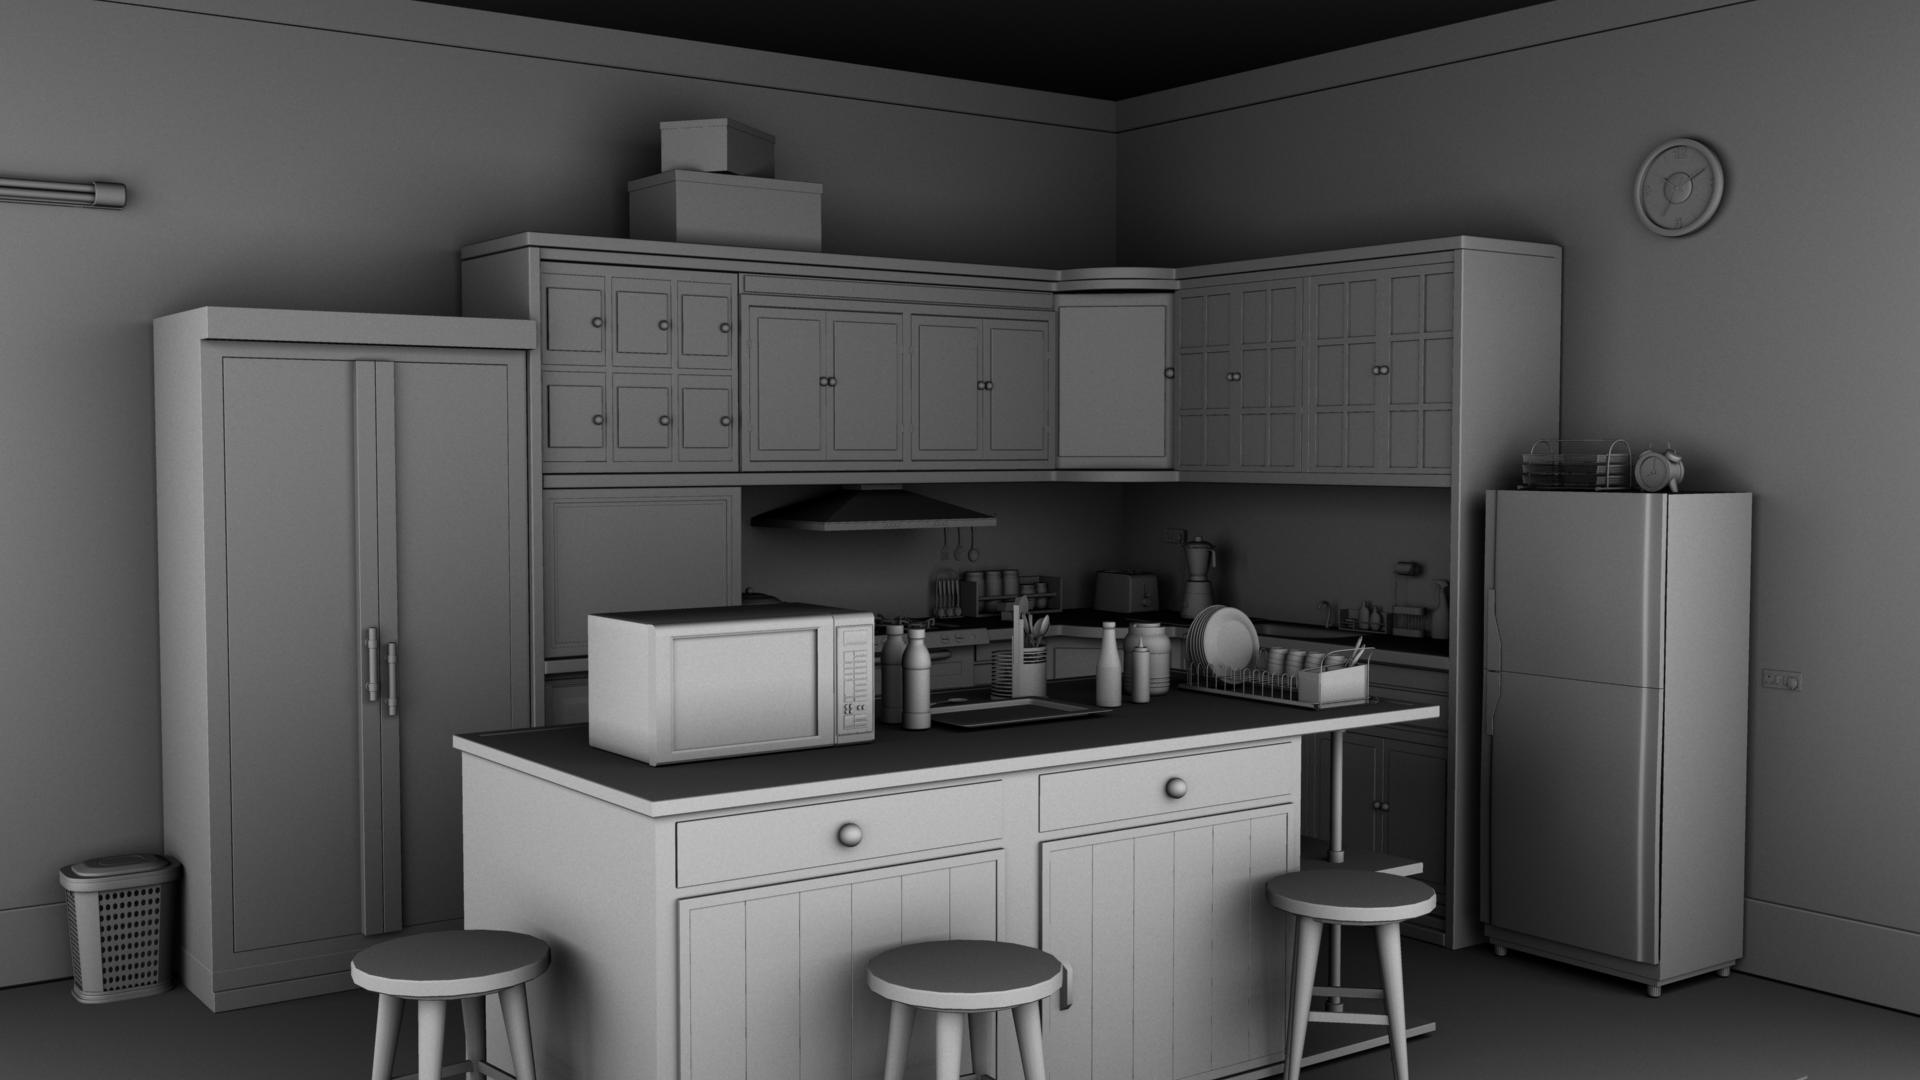 Kitchen 3d model architecture 3d models architecture ar vr for Model kitchen images